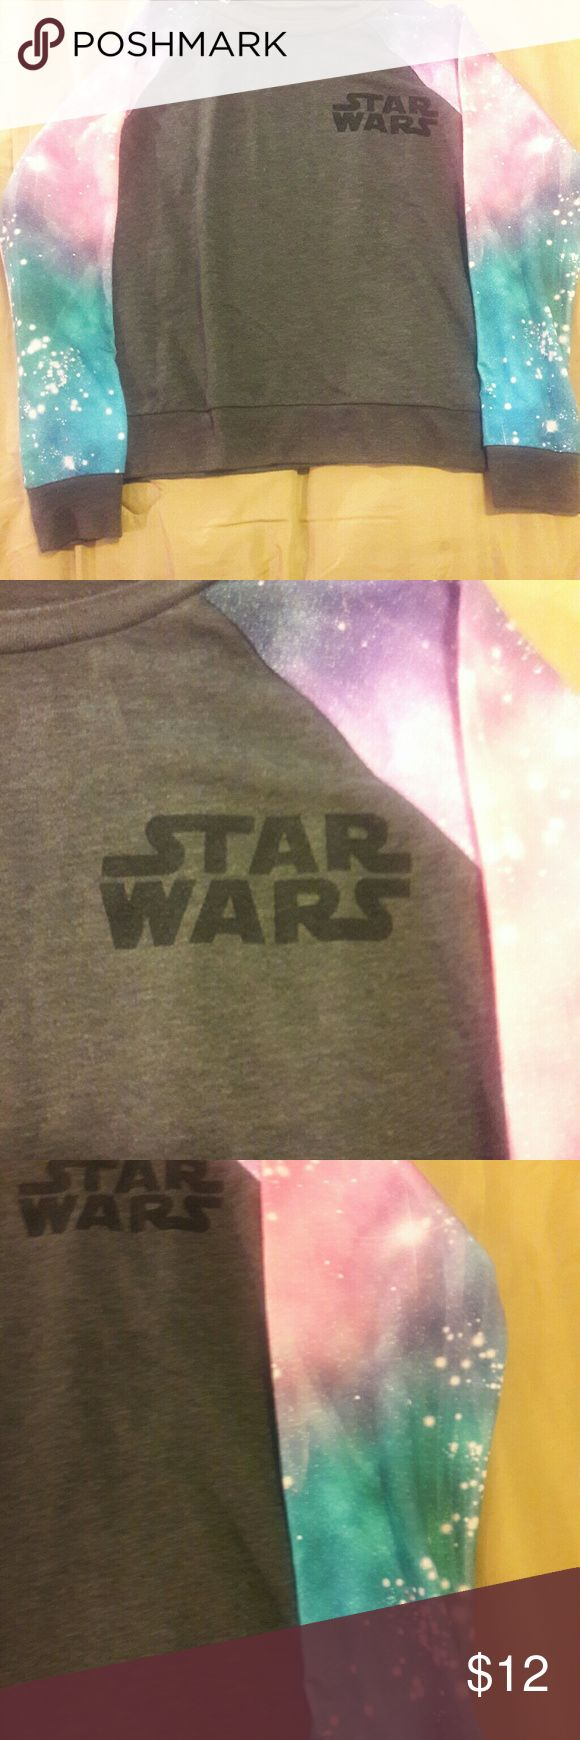 Star wars sweatshirt Size small gray with galaxy sleeves. Darth Vader on the back in black. 60% cotton and 40% polyester. Star Wars Tops Sweatshirts & Hoodies